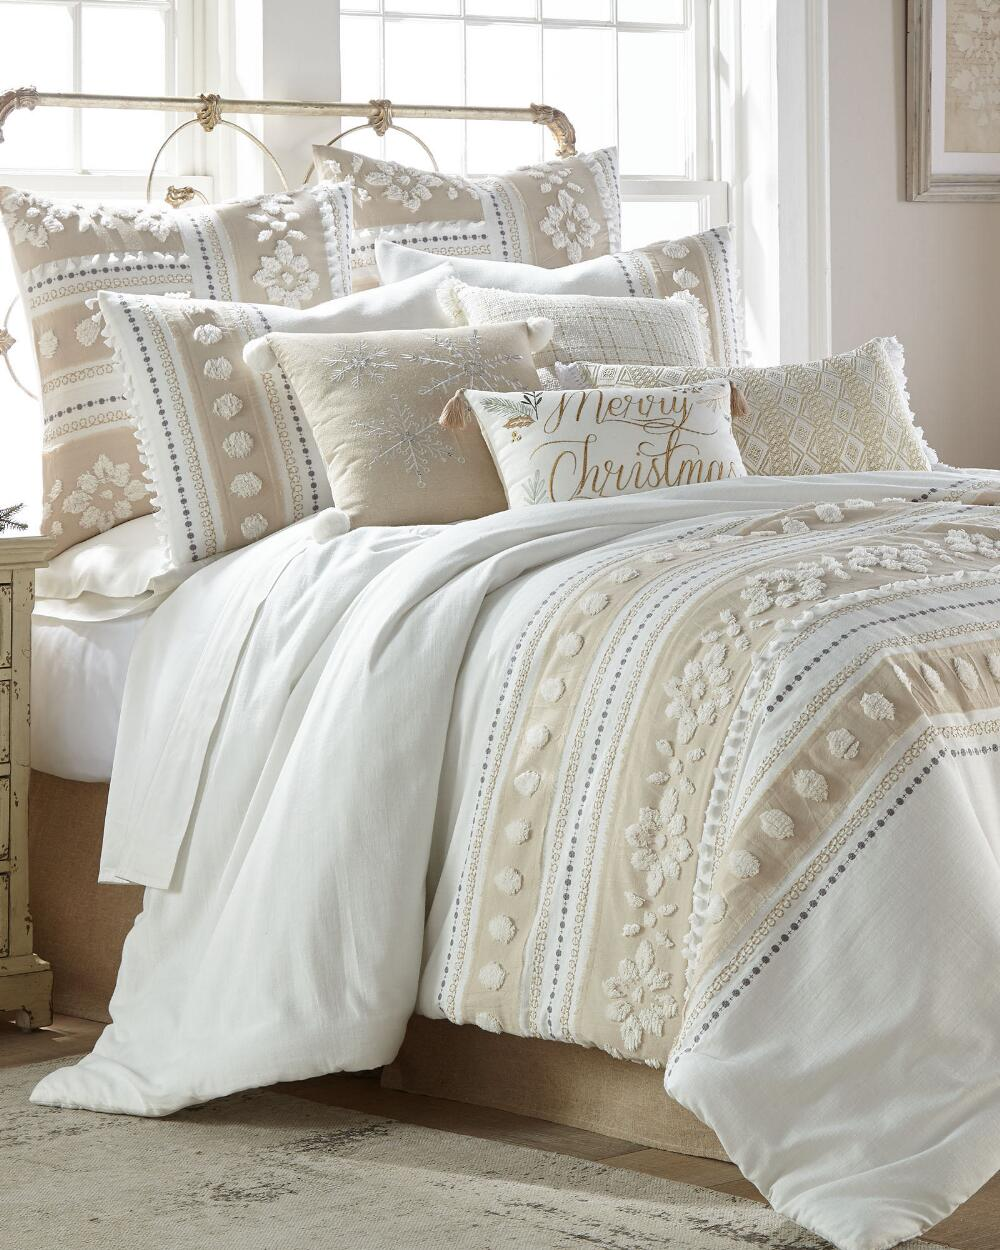 Festive Holiday Bedding Sets Comforters Amp More Stein